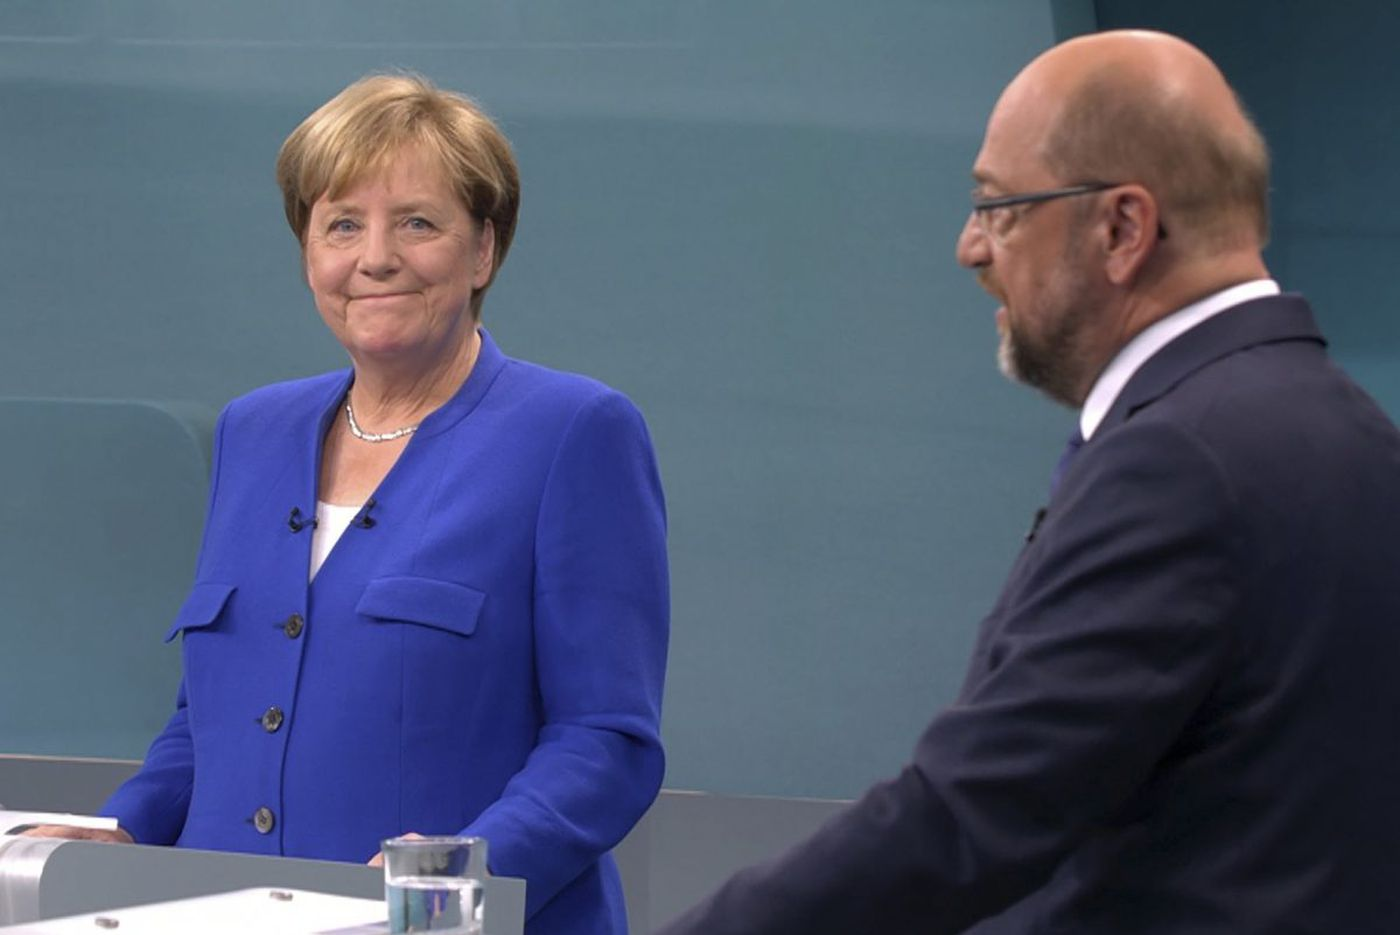 Even if Merkel is reelected, the rise of extremism in Germany is worrisome